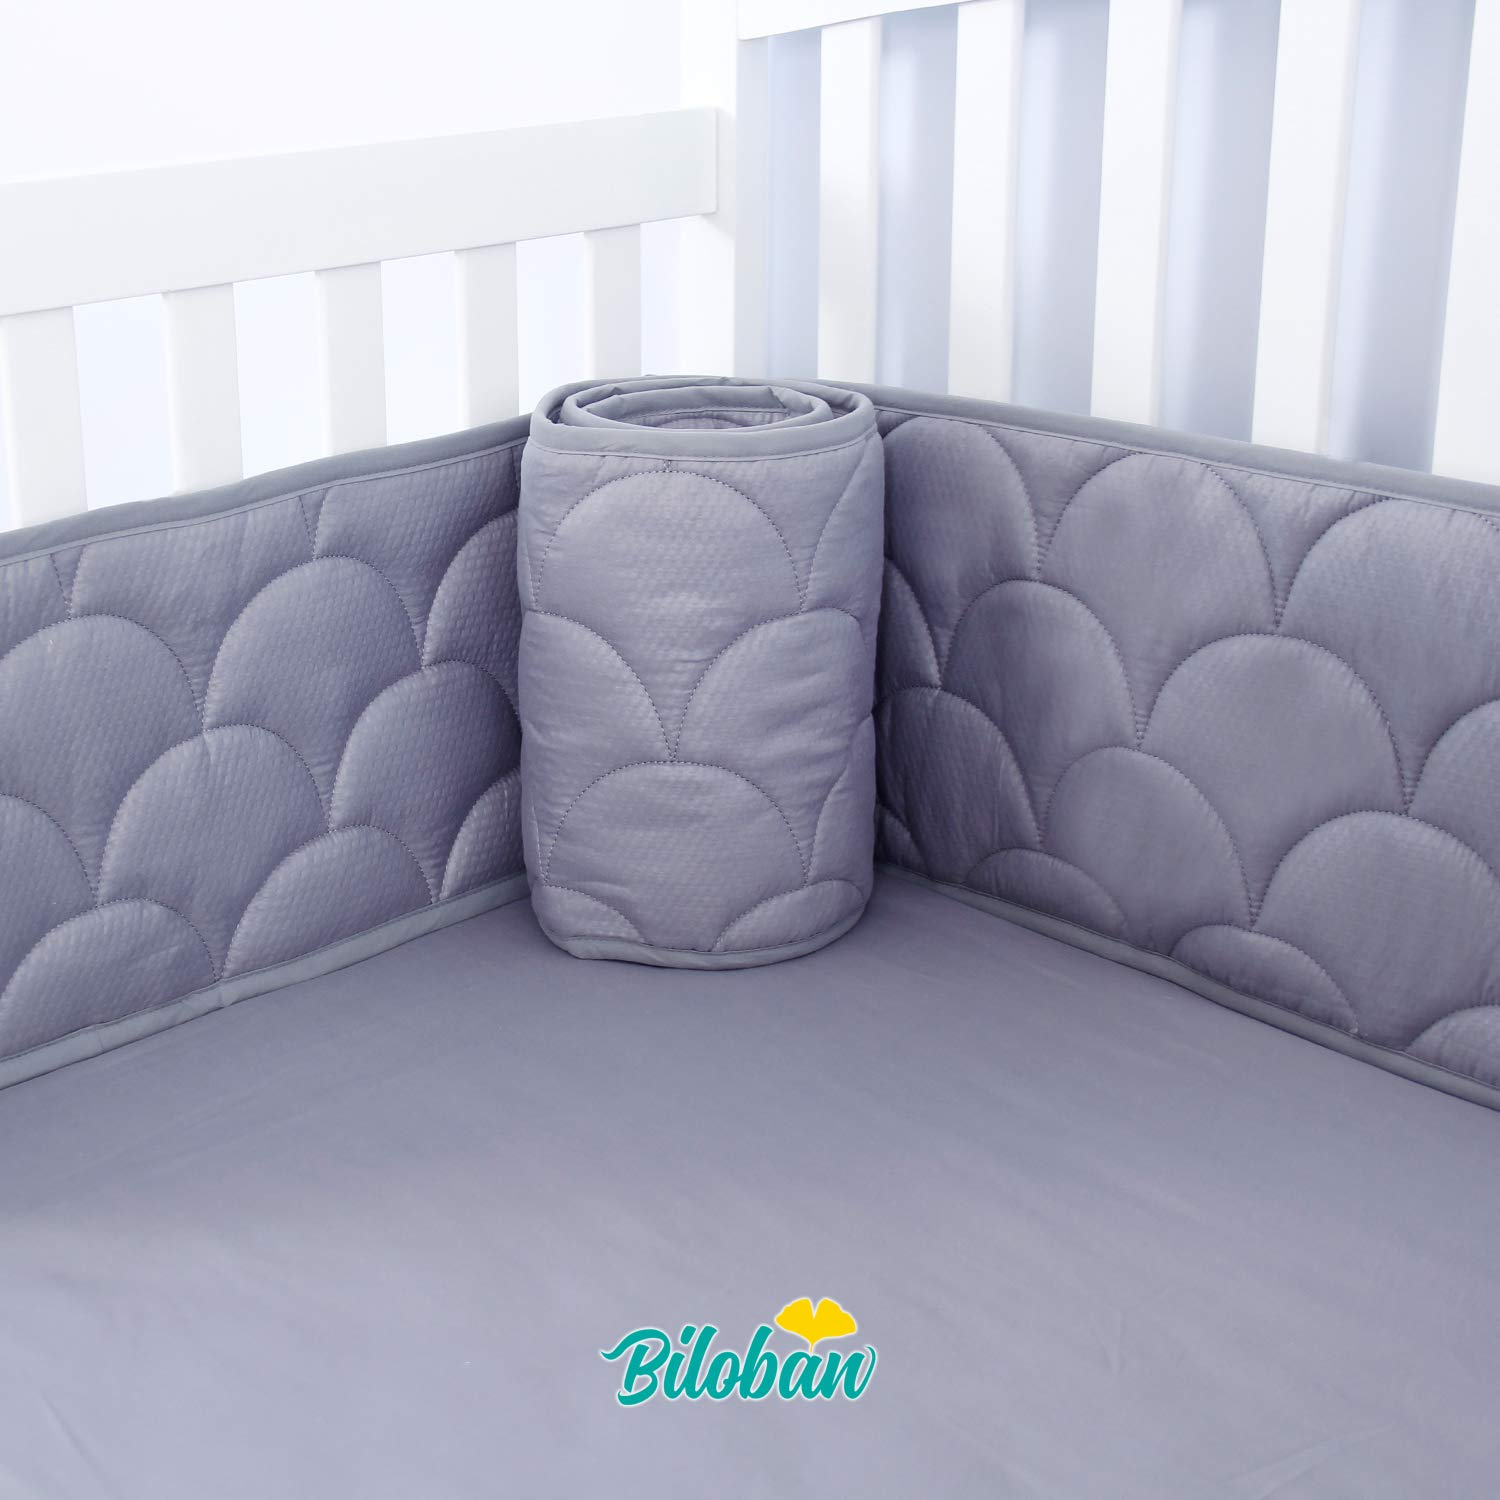 Baby Bumper for Cribs, Safe & Washable Baby Bedding Bumpers Crib Padded Liners for Boys, 4 Piece/Set Fit Standard Crib 52 x 38, Gray